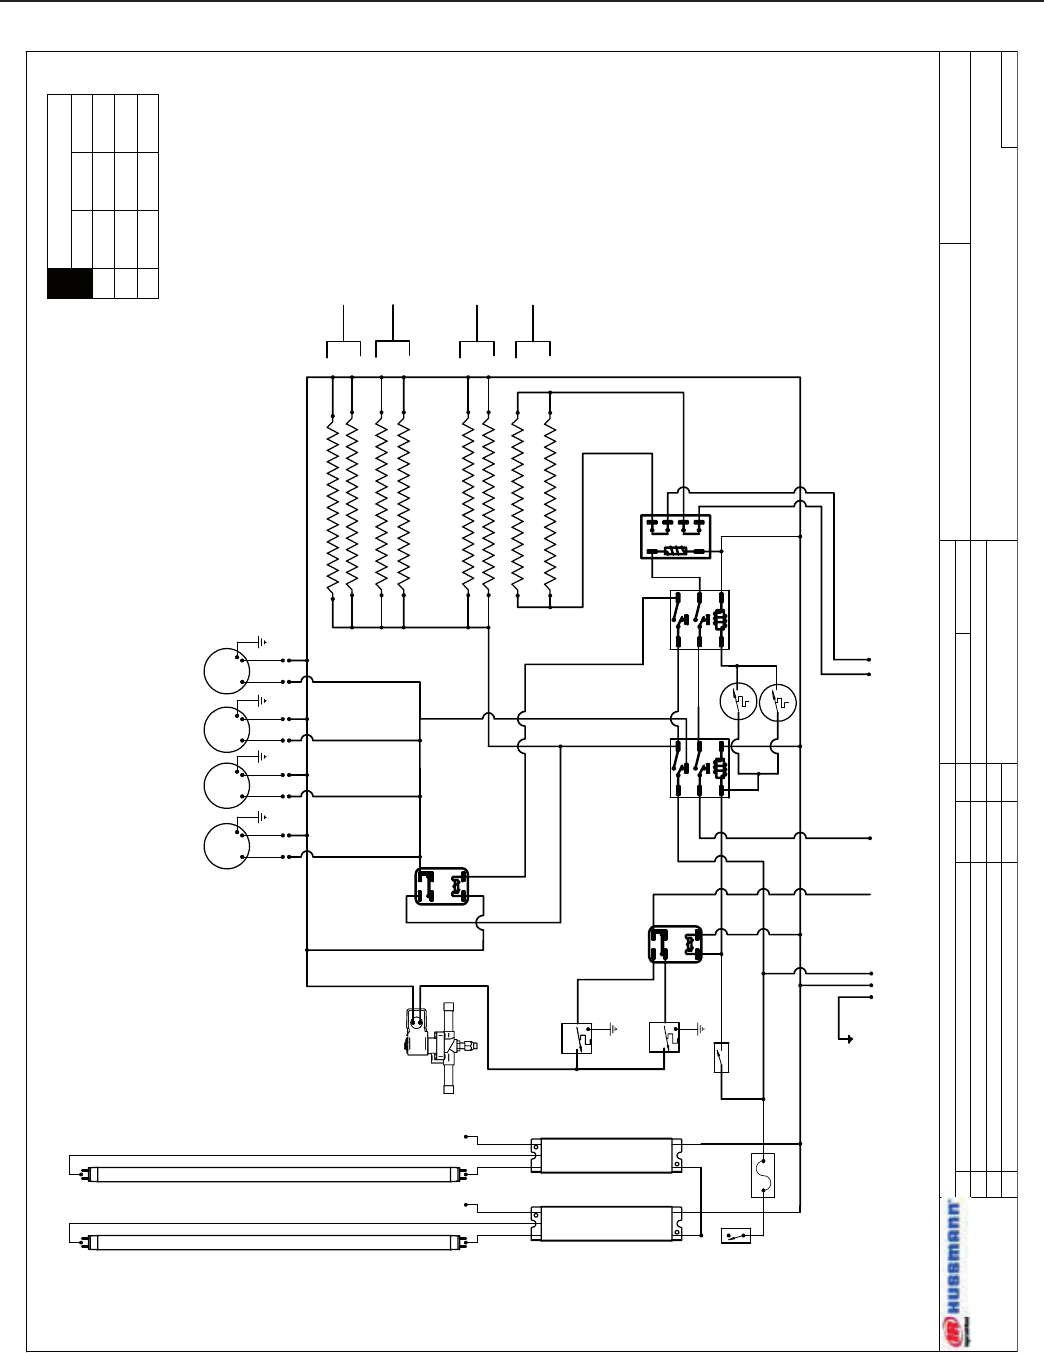 6b0c3921 3432 43fa ada4 bfb9776e5084 bgc page 12 of hussman refrigerator fmss l user guide manualsonline com hussmann wiring diagrams at panicattacktreatment.co